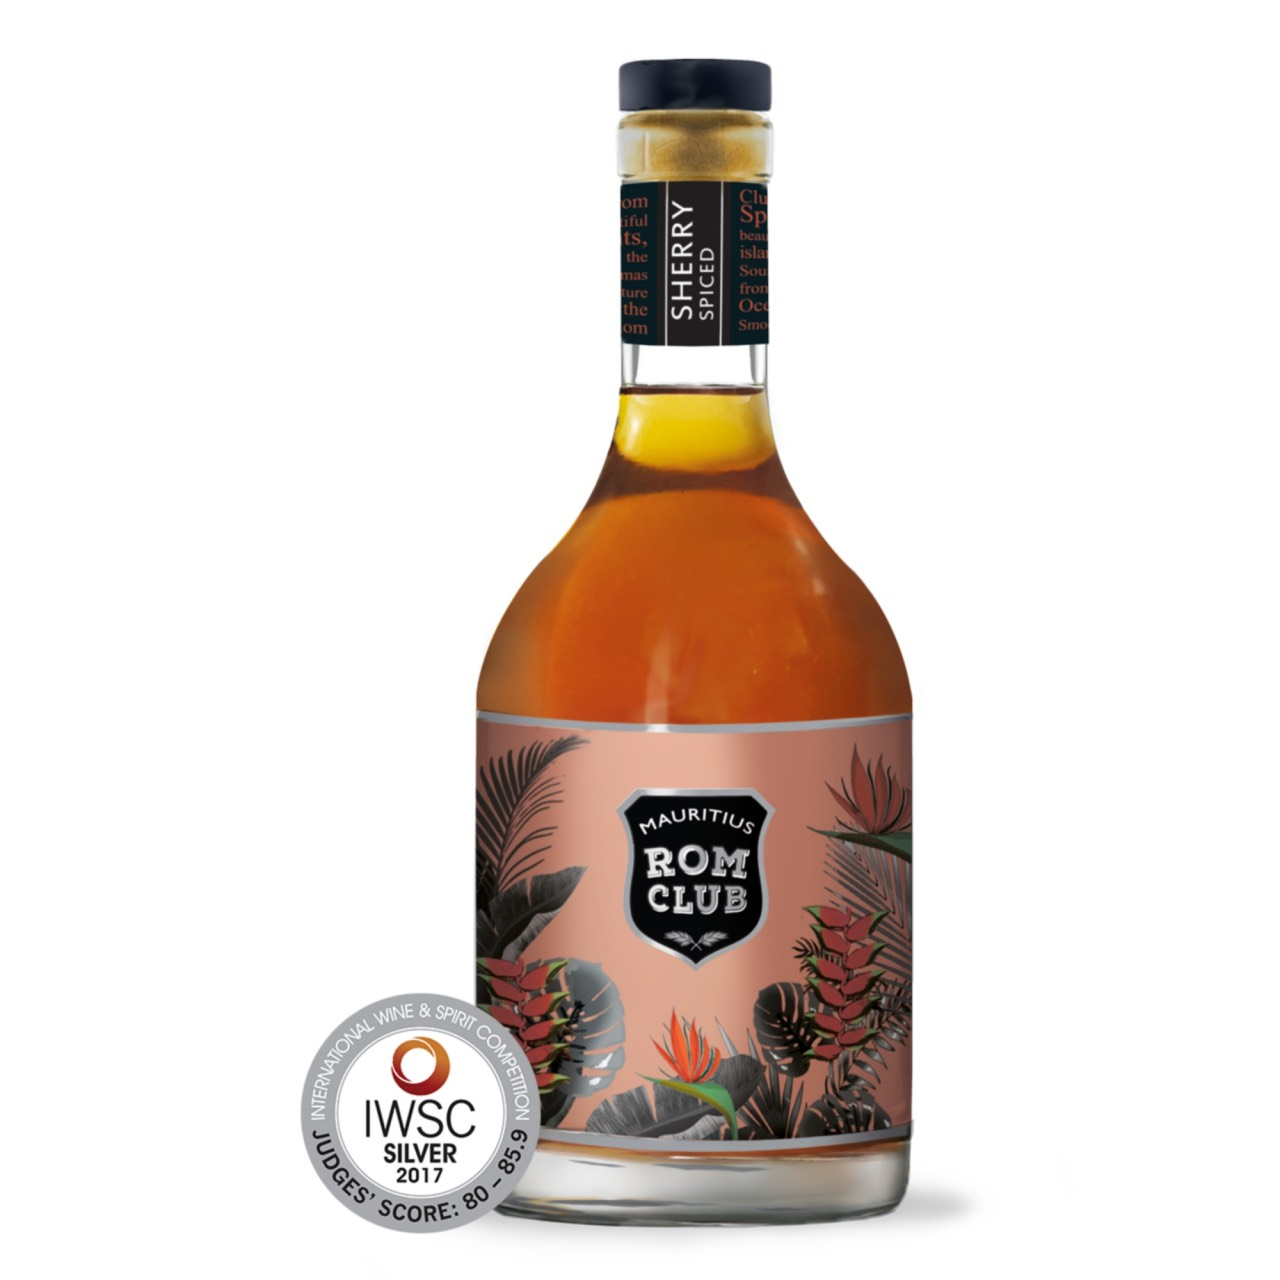 Bottle image of Mauritius Rom Club Sherry Spiced